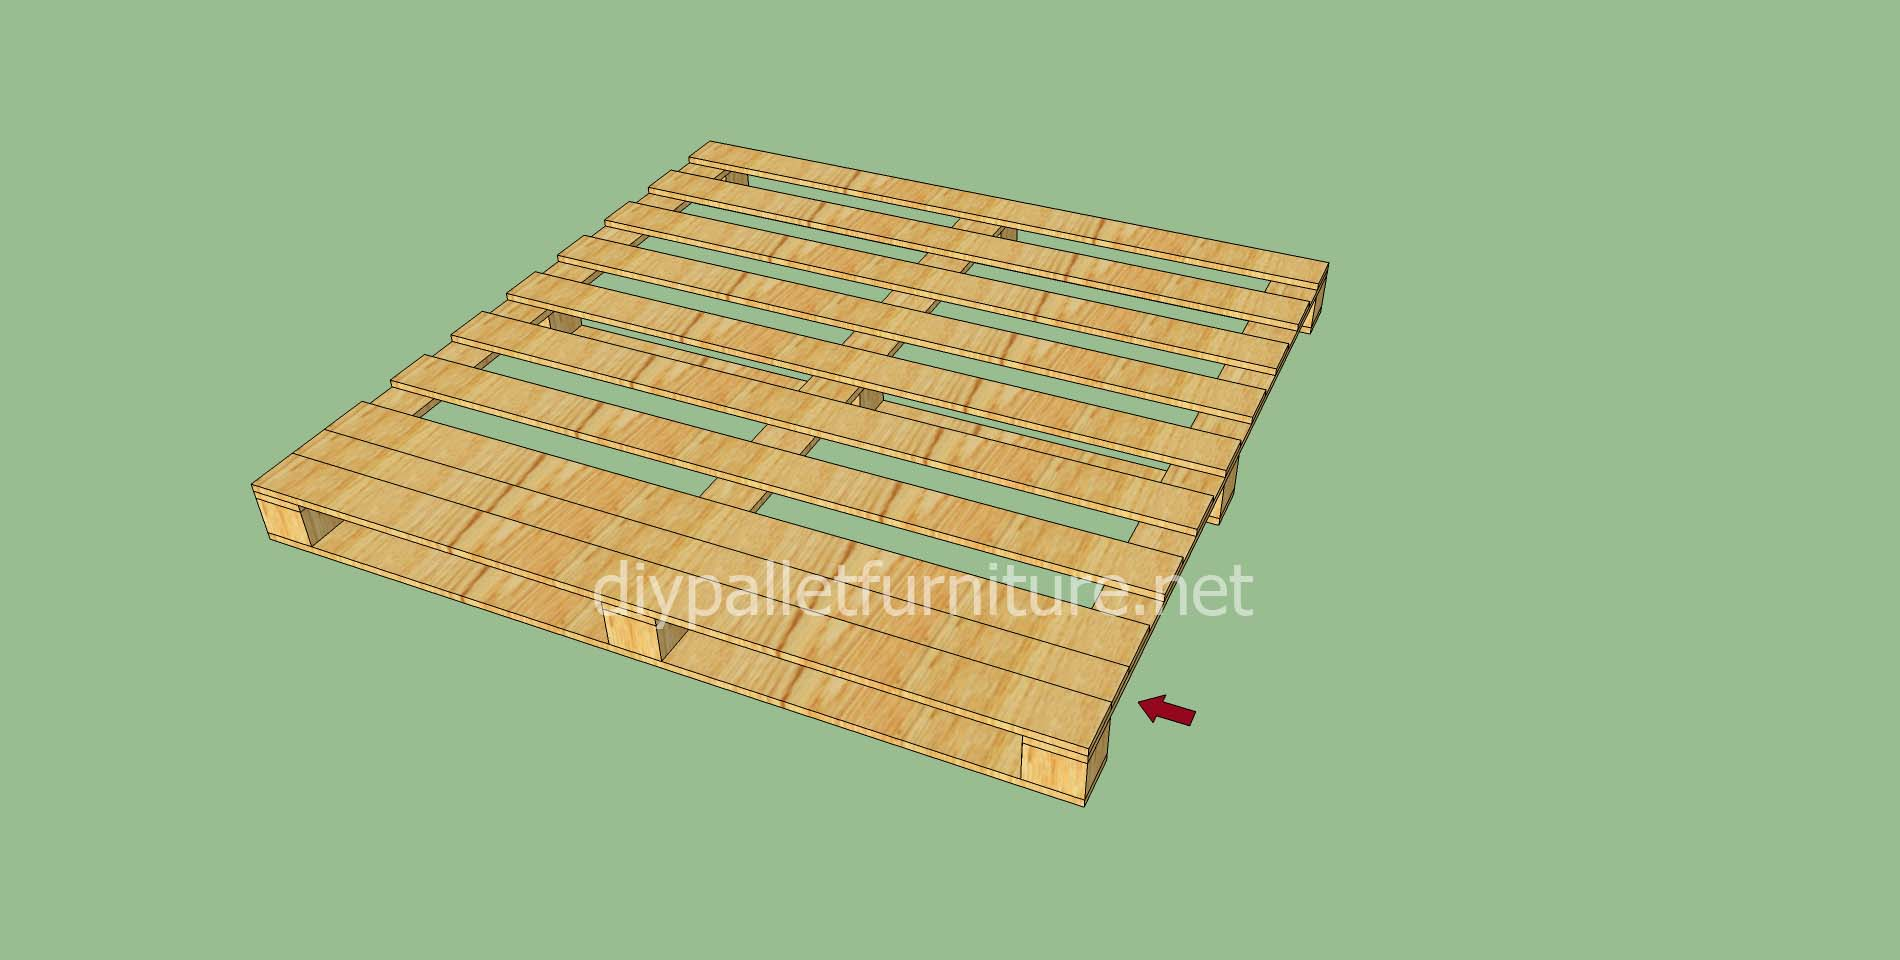 simple flooring made with wooden palletsdiy pallet furniture diy pallet furniture. Black Bedroom Furniture Sets. Home Design Ideas